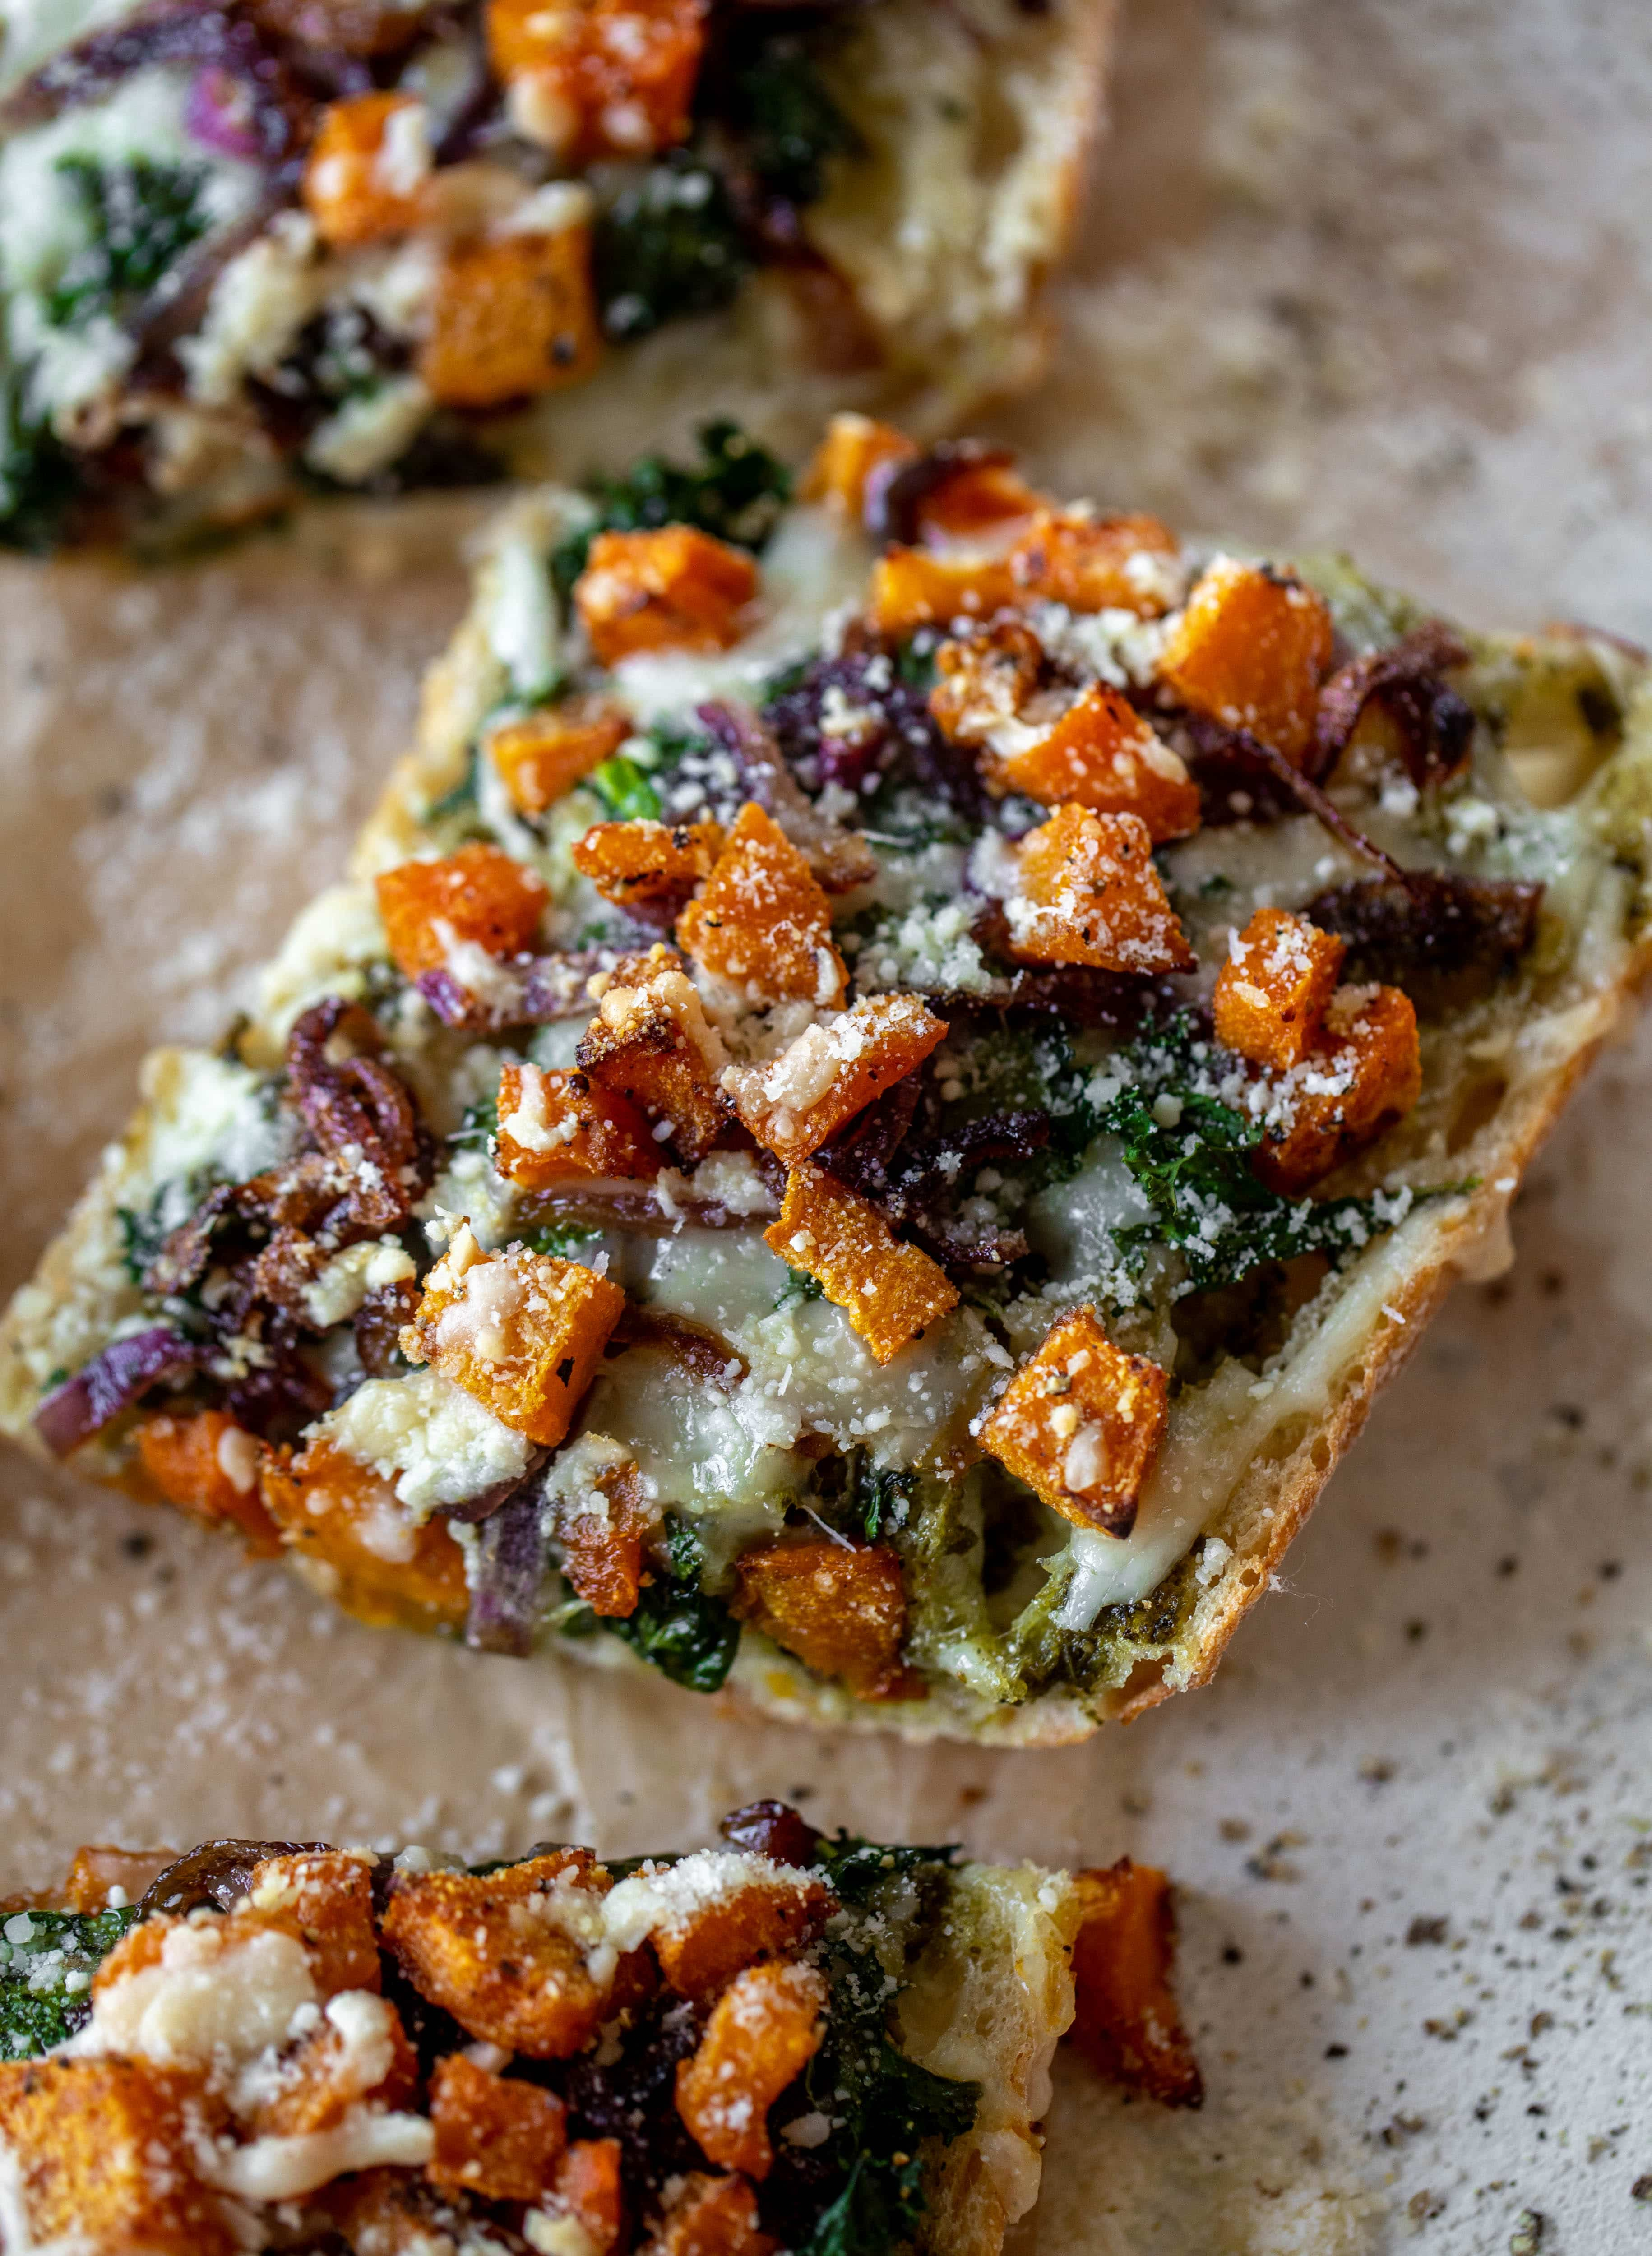 These butternut squash french breads have so much flavor. Pesto, caramelized onions, kale, roasted butternut and tons of fontina cheese. Delicious!